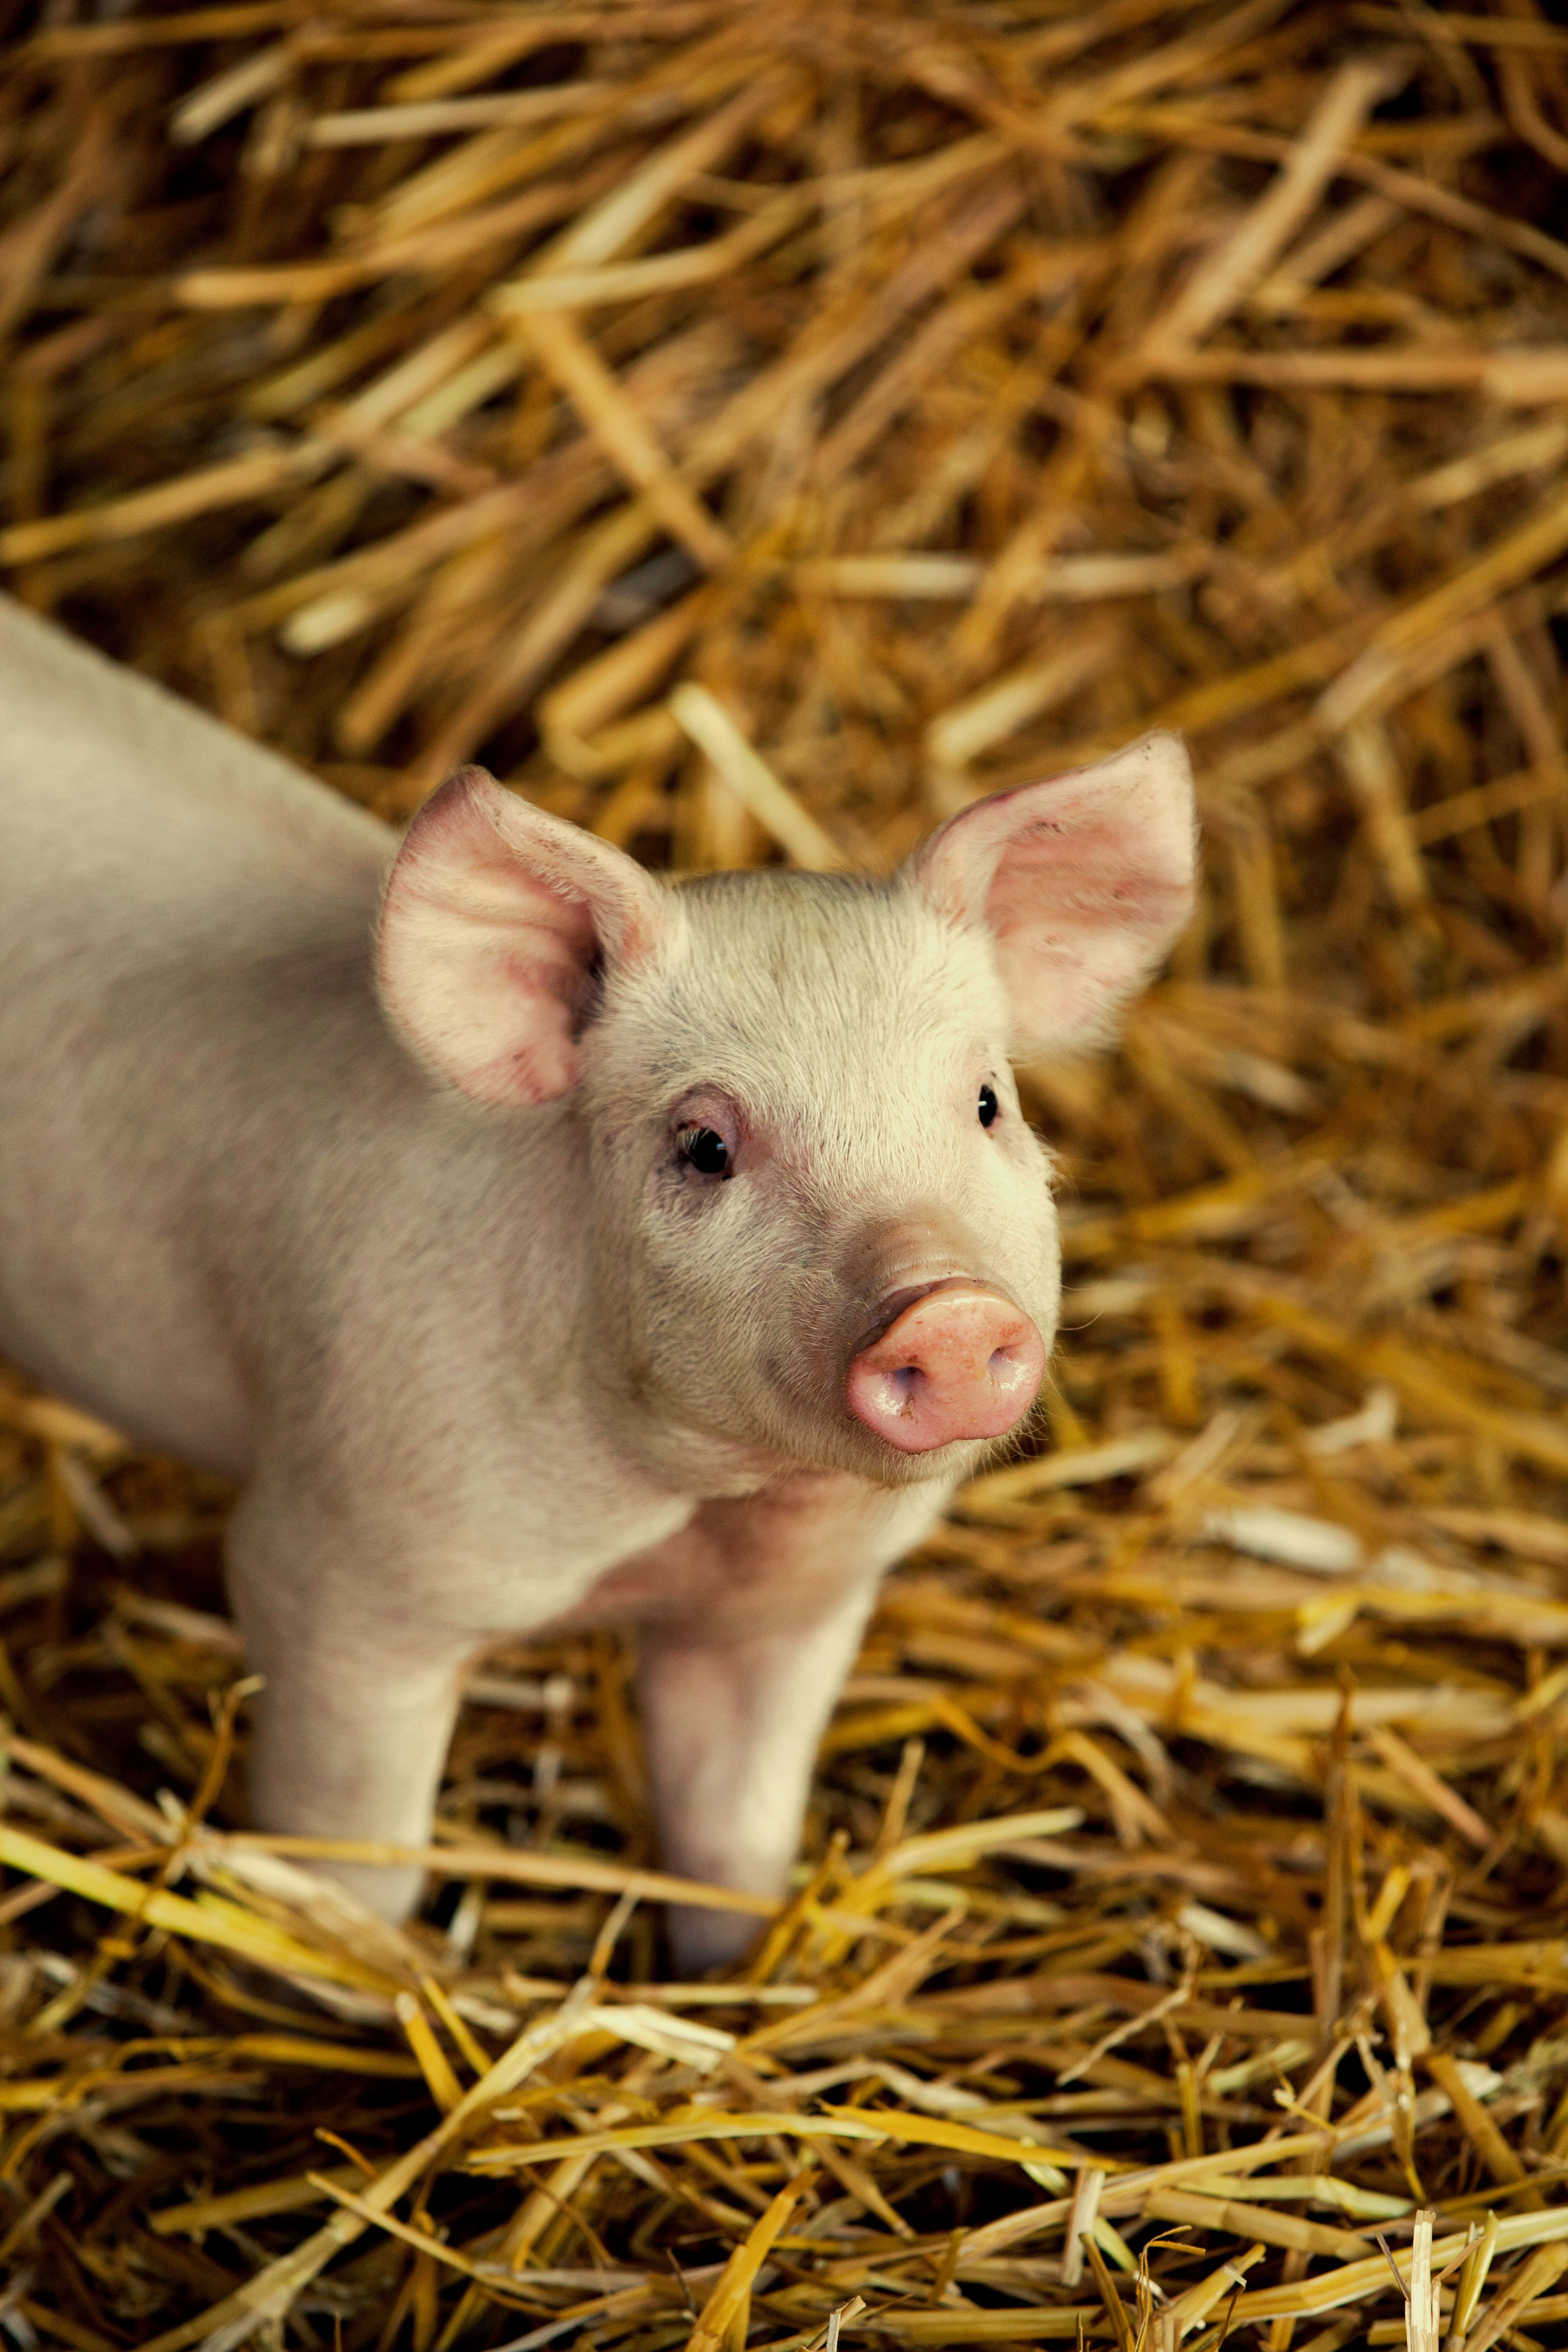 It's not just sausages and bacon. Pigs also make their